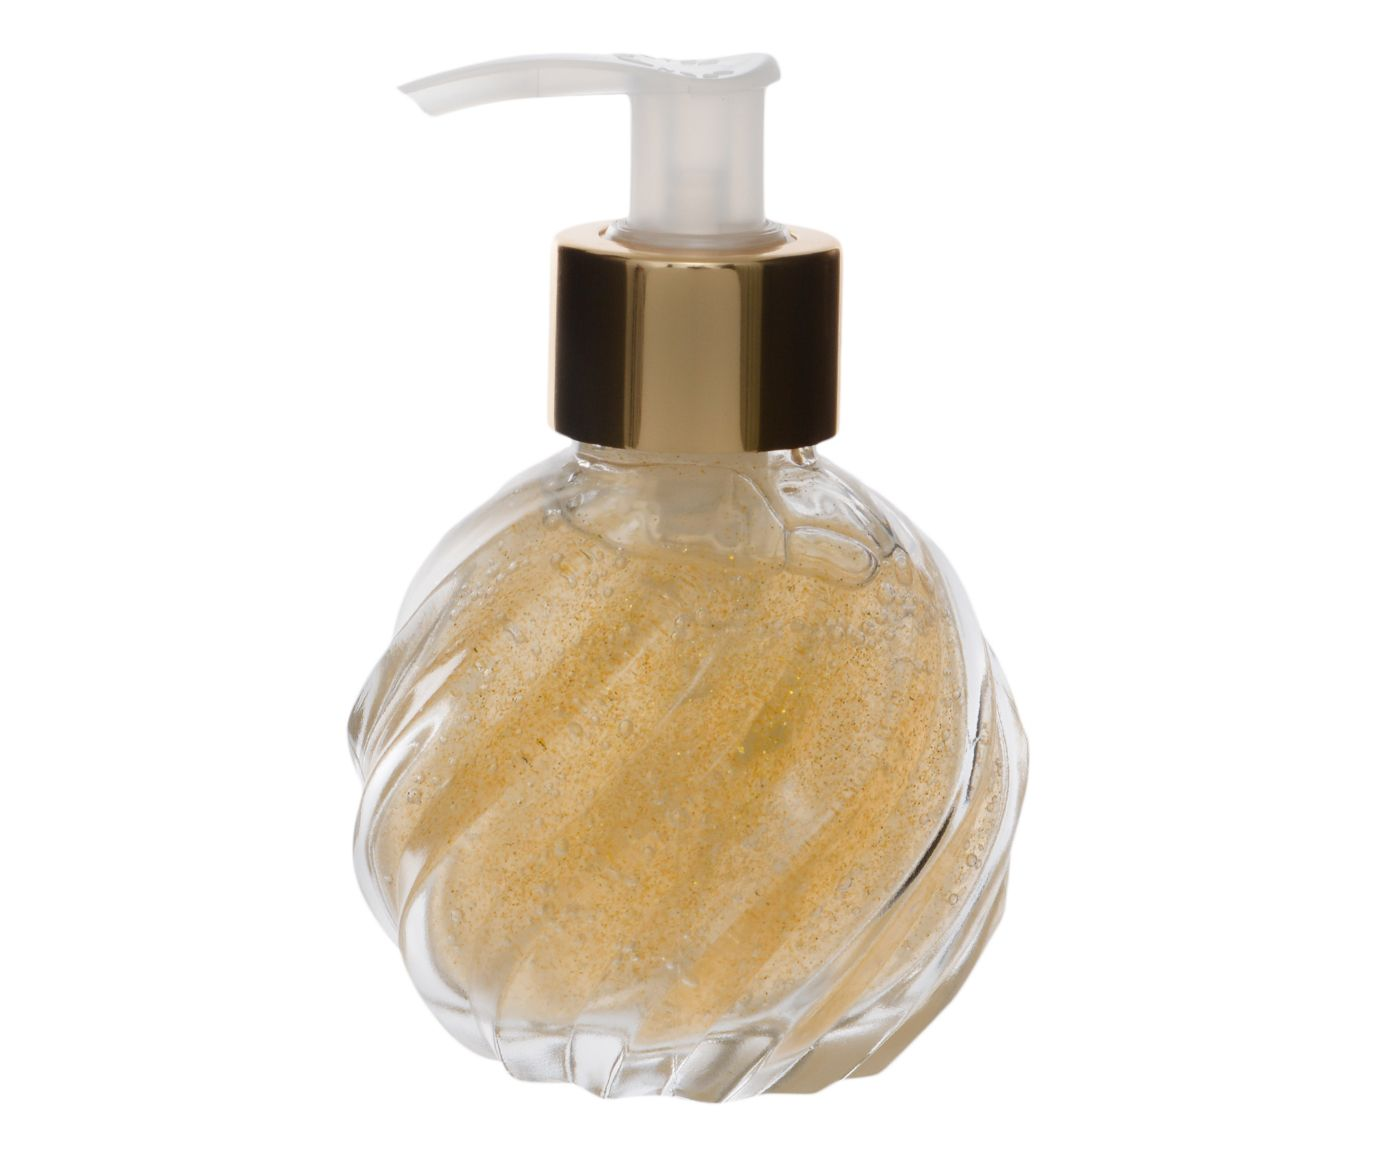 Sabonete Líquido Cannes Bamboo - 120ml   Westwing.com.br